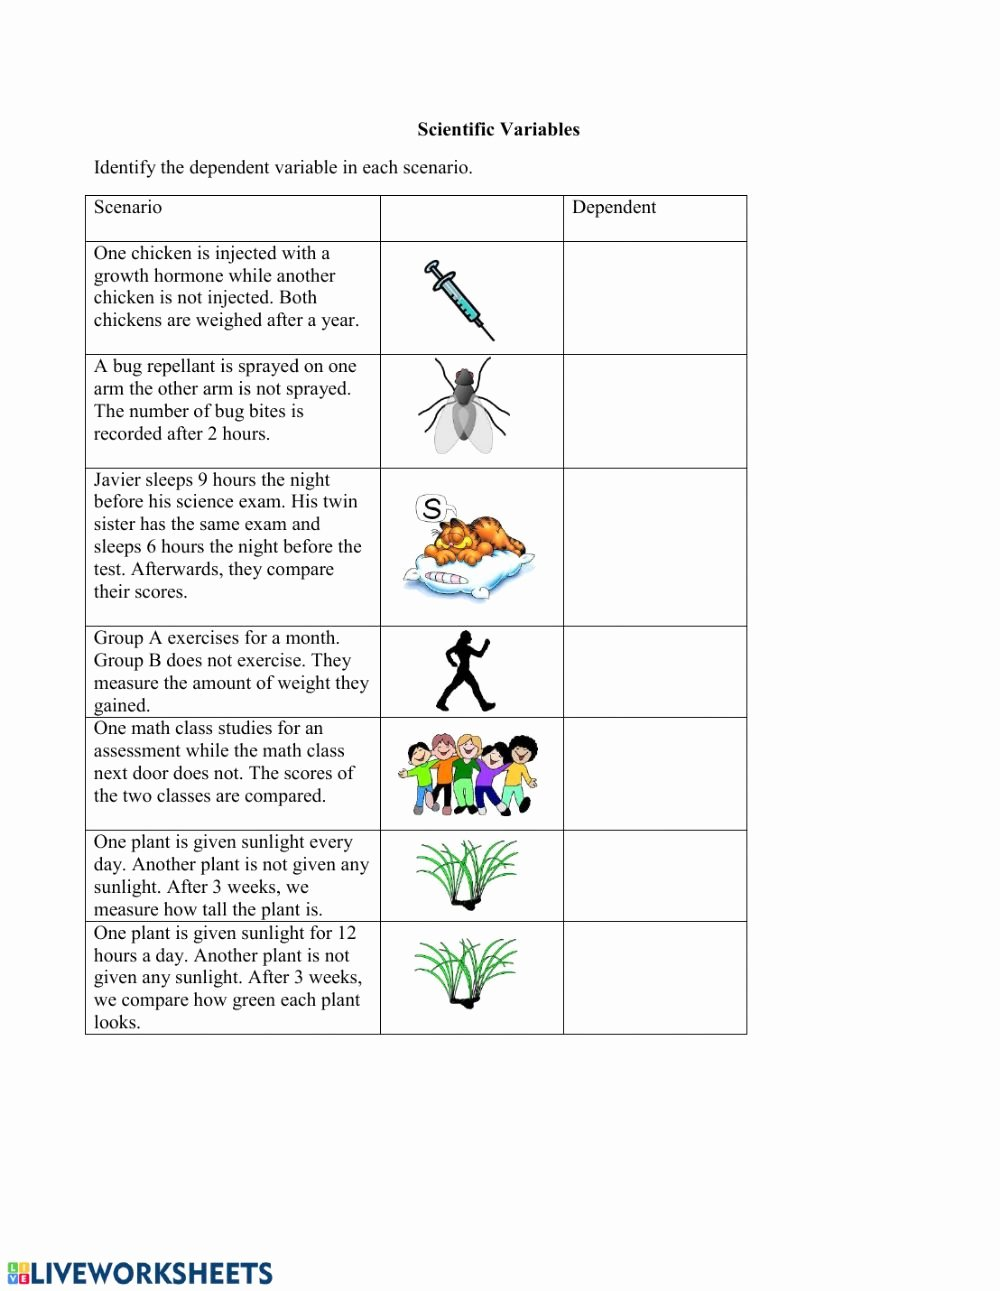 Dependent and Independent Variables Worksheet Inspirational Identifying Dependent Variables Independent and Dependent